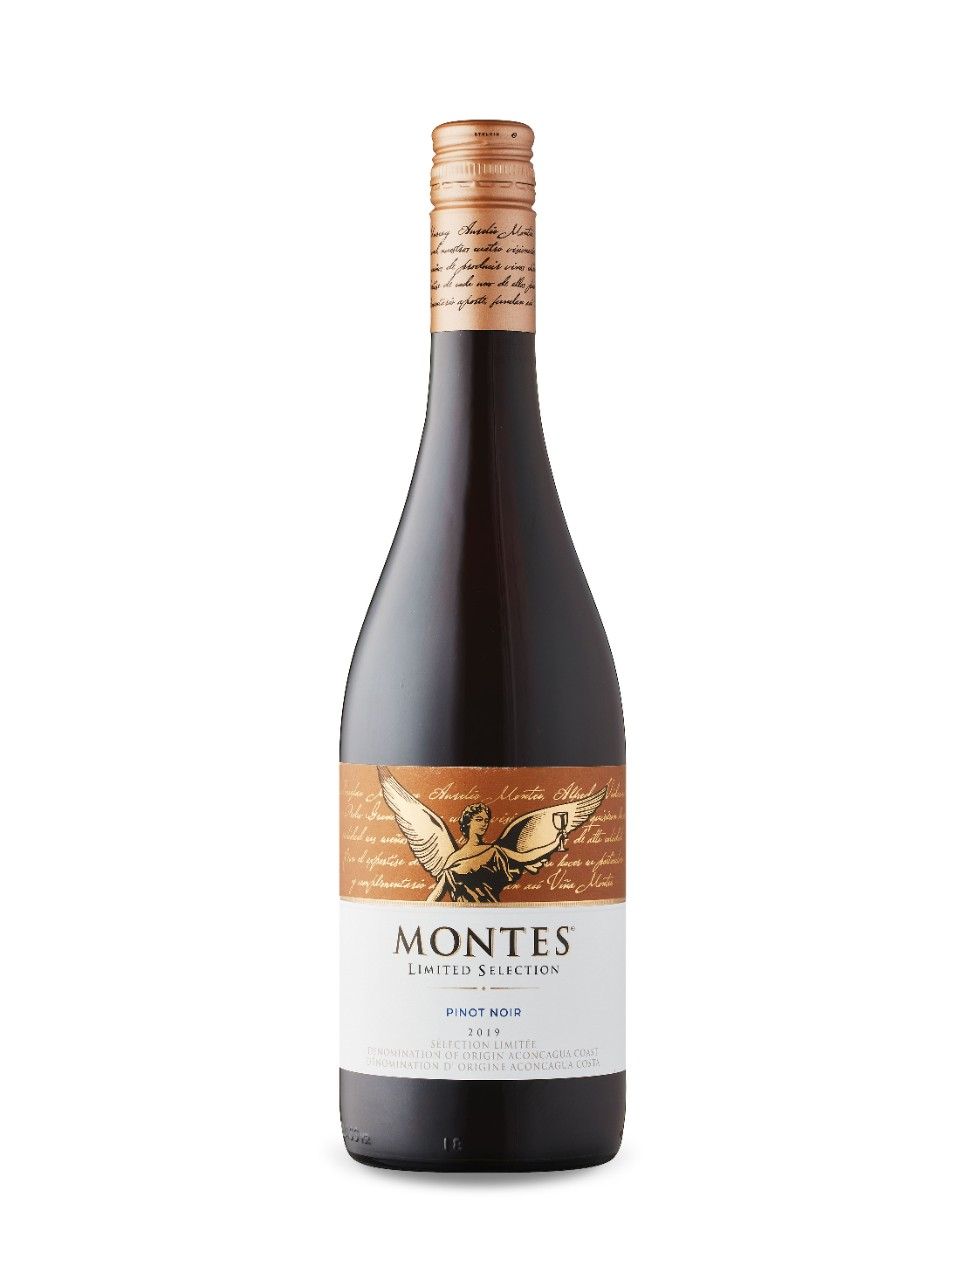 Montes Limited Selection Pinot Noir 2018 from LCBO